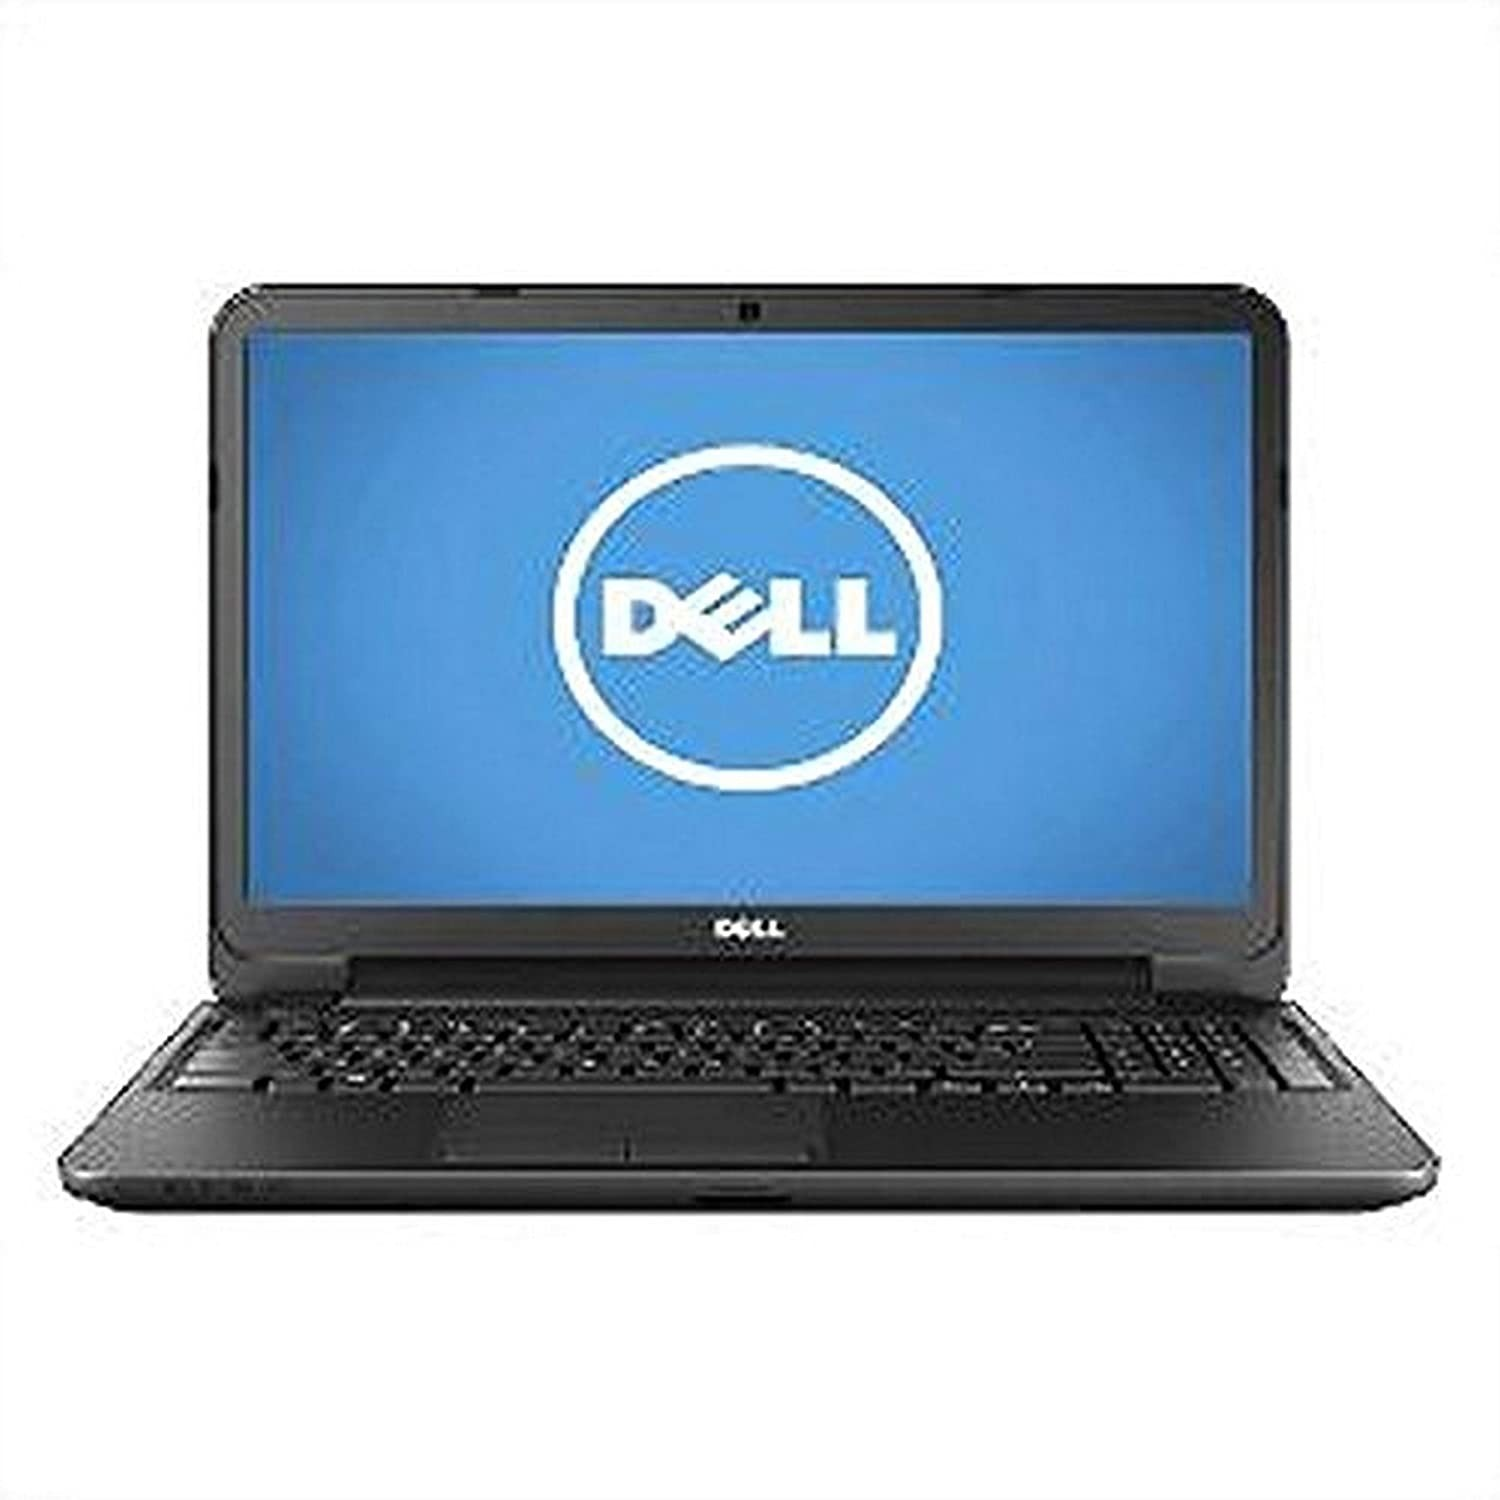 Refurbished laptops & desktops - REFURBISHED DELL INSPIRON 3437 (CORE I5 4TH GEN/4GB/500GB/WEBCAM/14''/DOS)